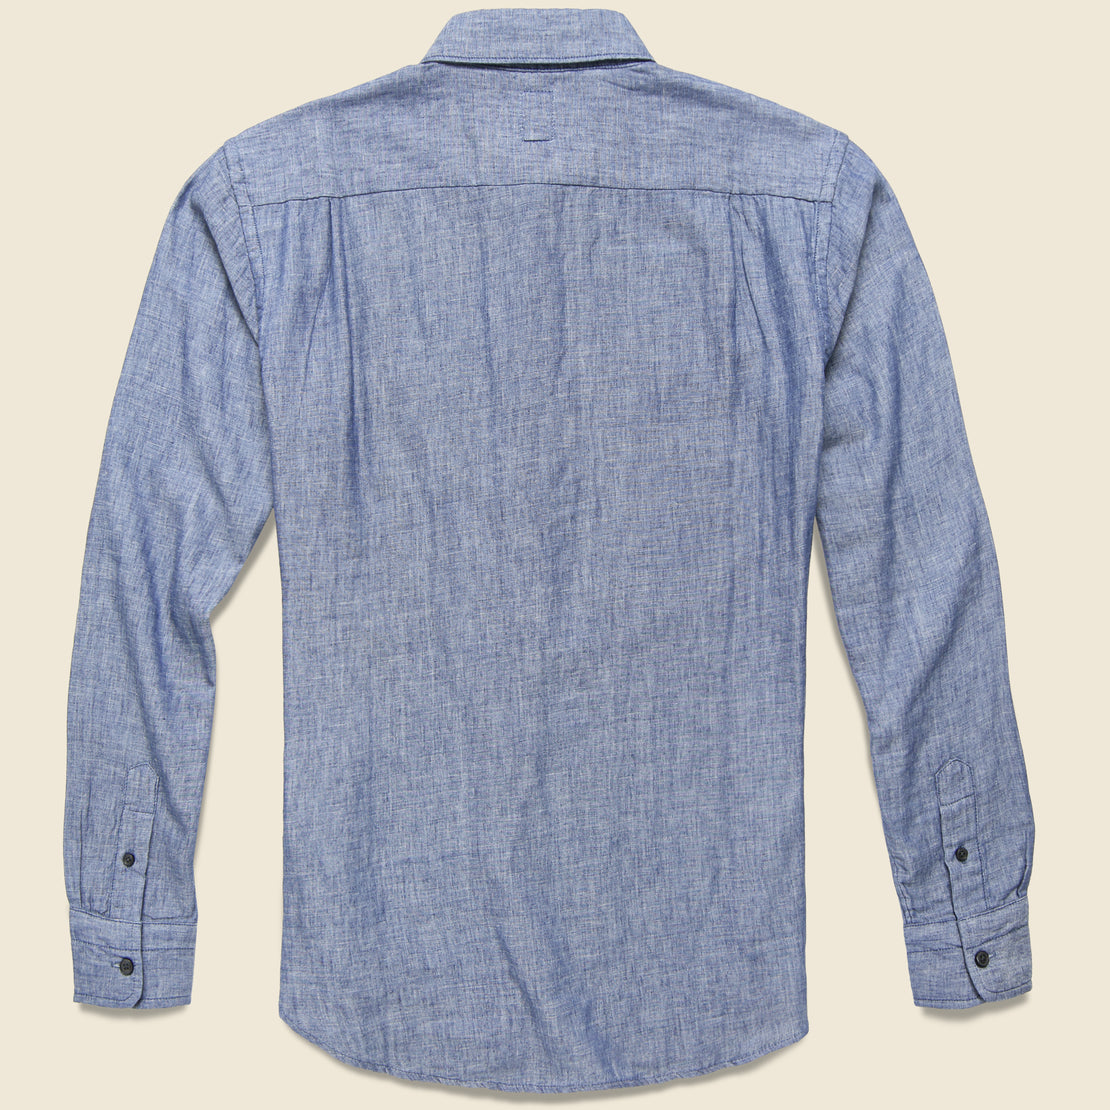 Vintage Double Gauze Shirt - Light Indigo